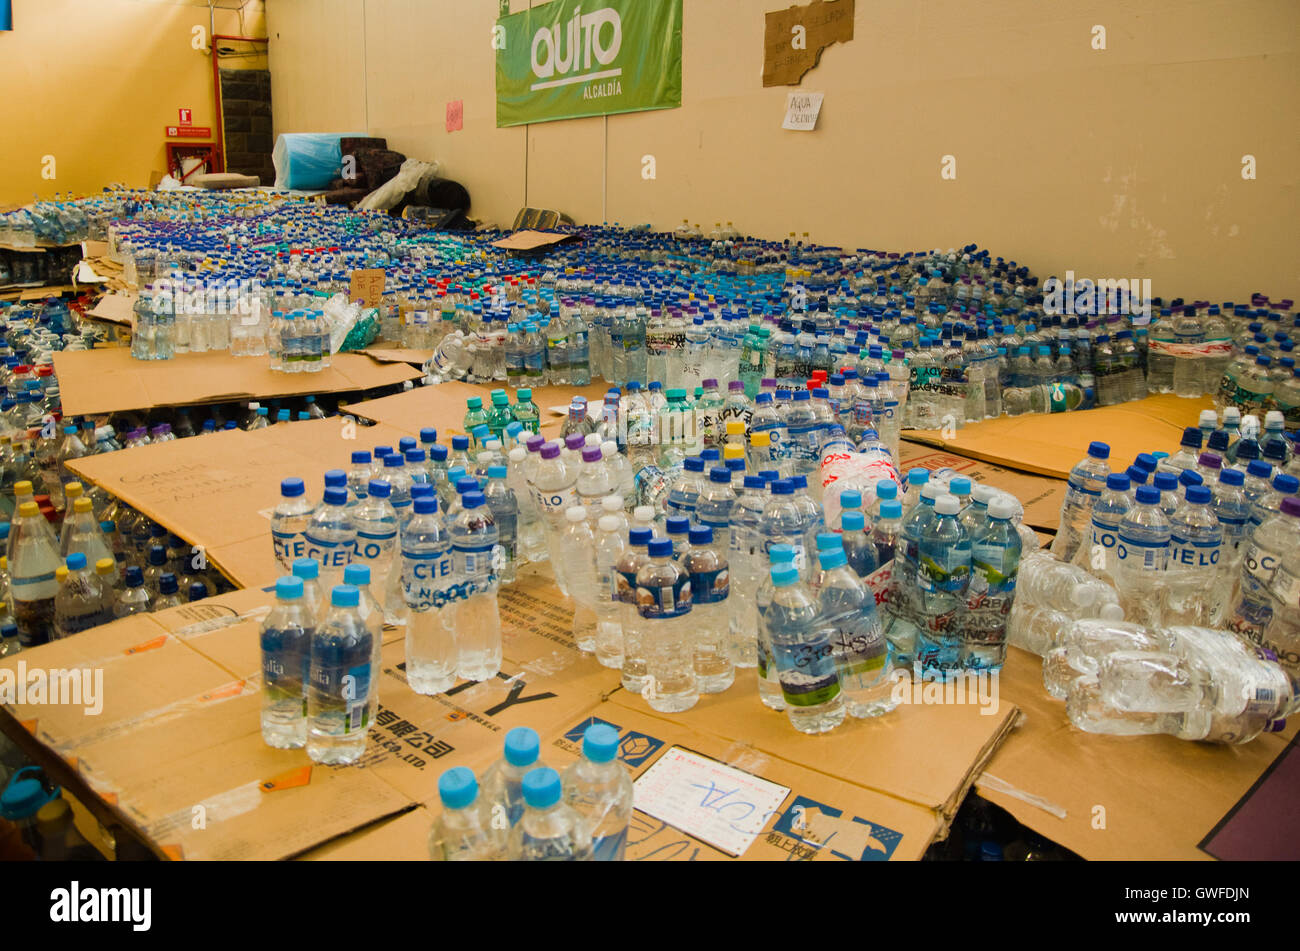 Quito, Ecuador - April 23, 2016: Water donated by citizens of Quito providing disaster relief for earthquake survivors - Stock Image